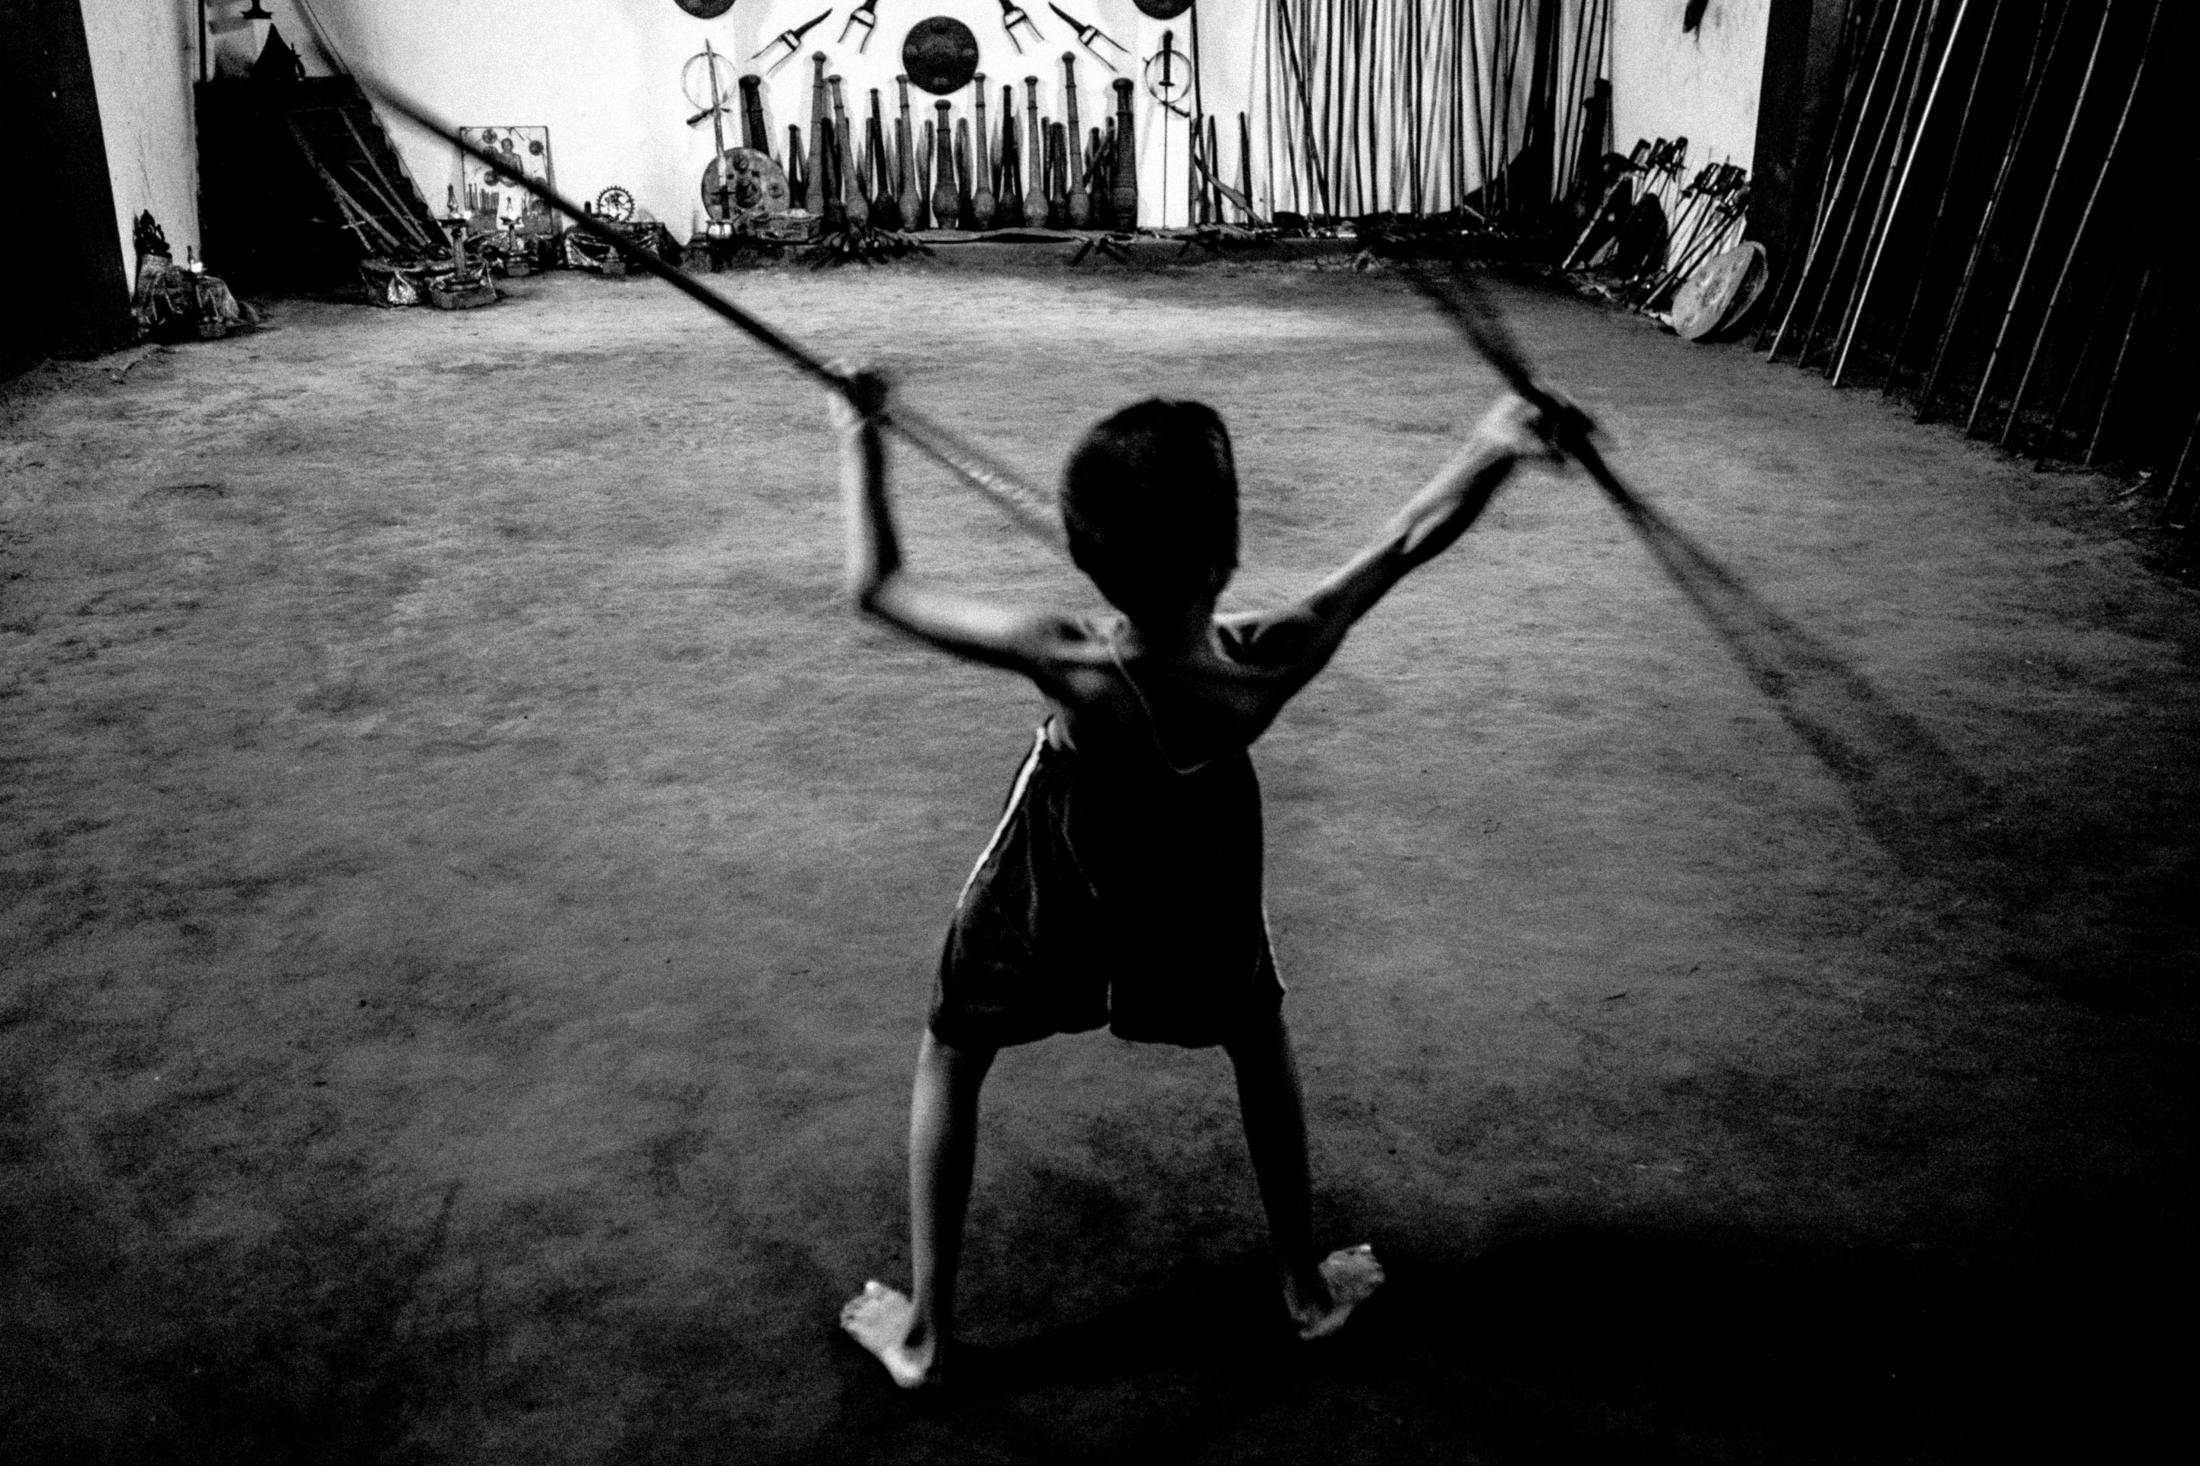 A child does coordination training with the help of two bamboo sticks while waiting for his master.